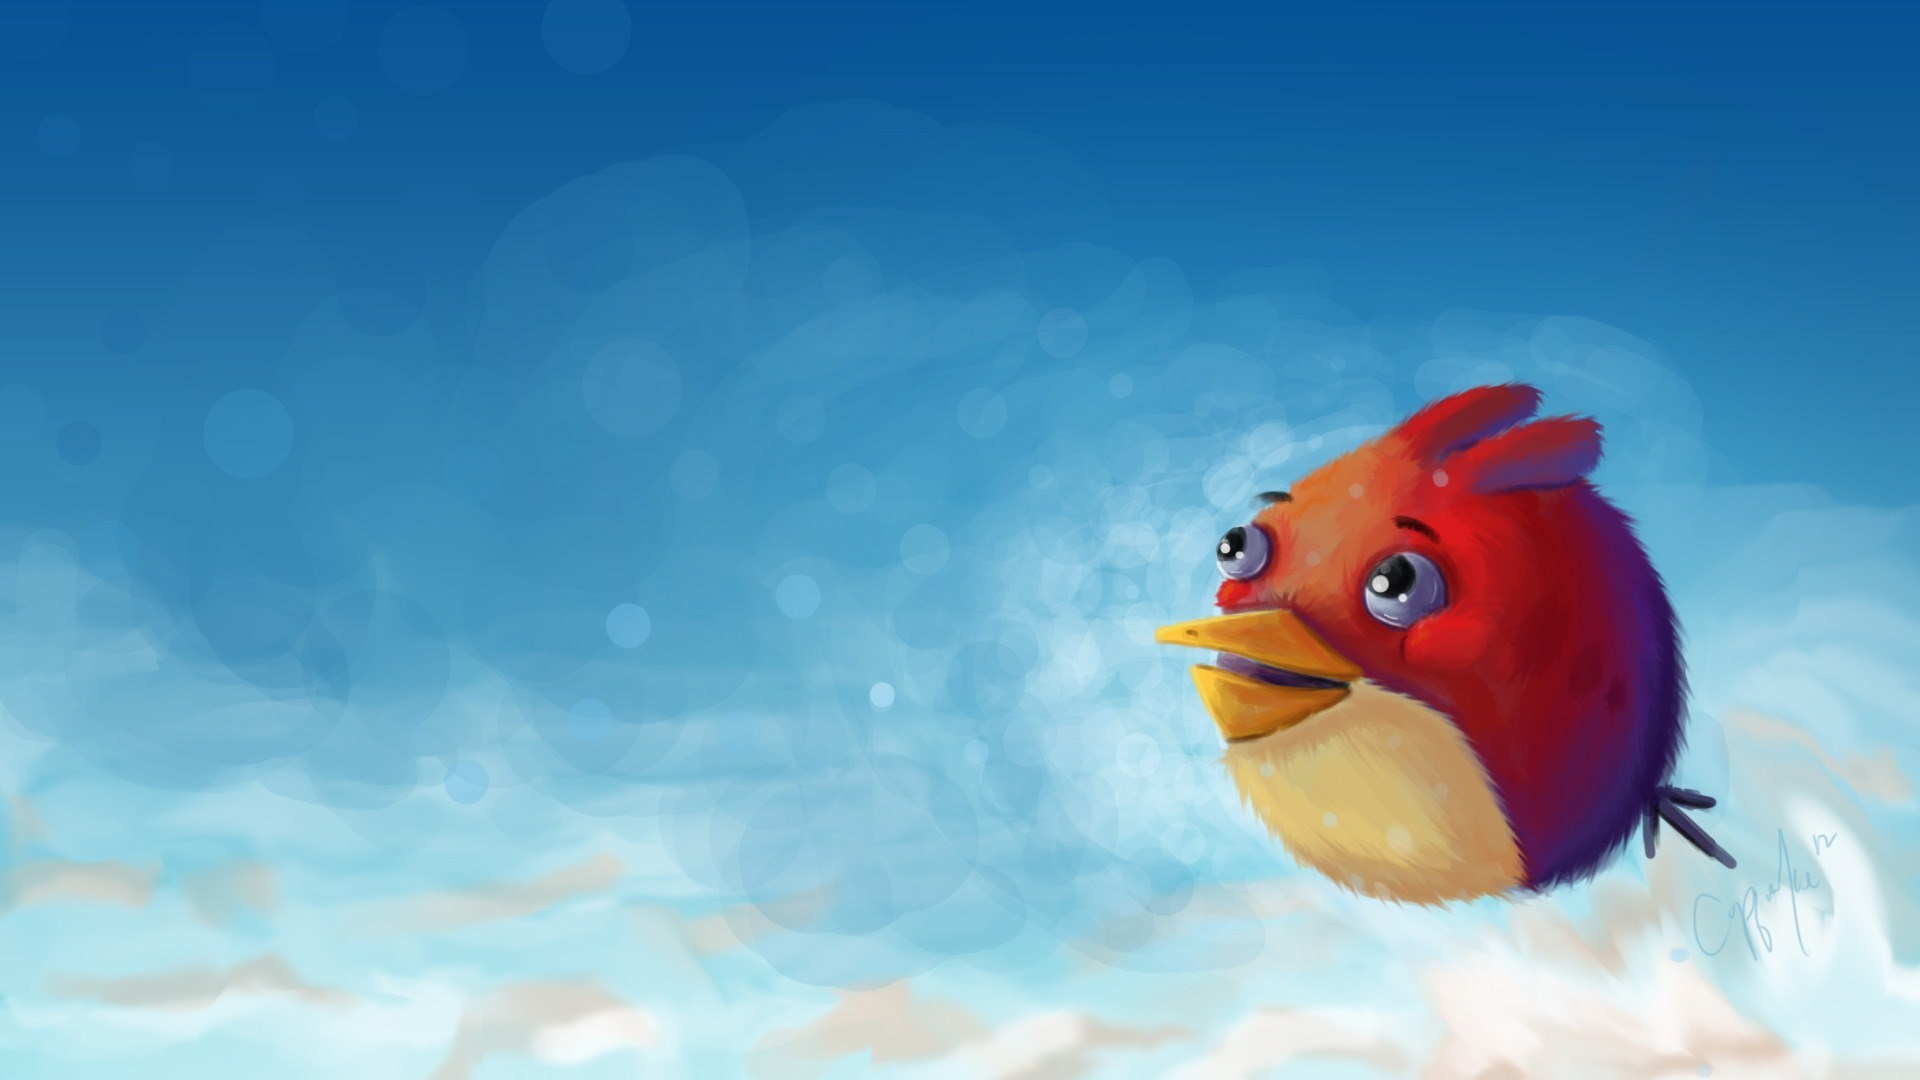 Angry Bird Artwork